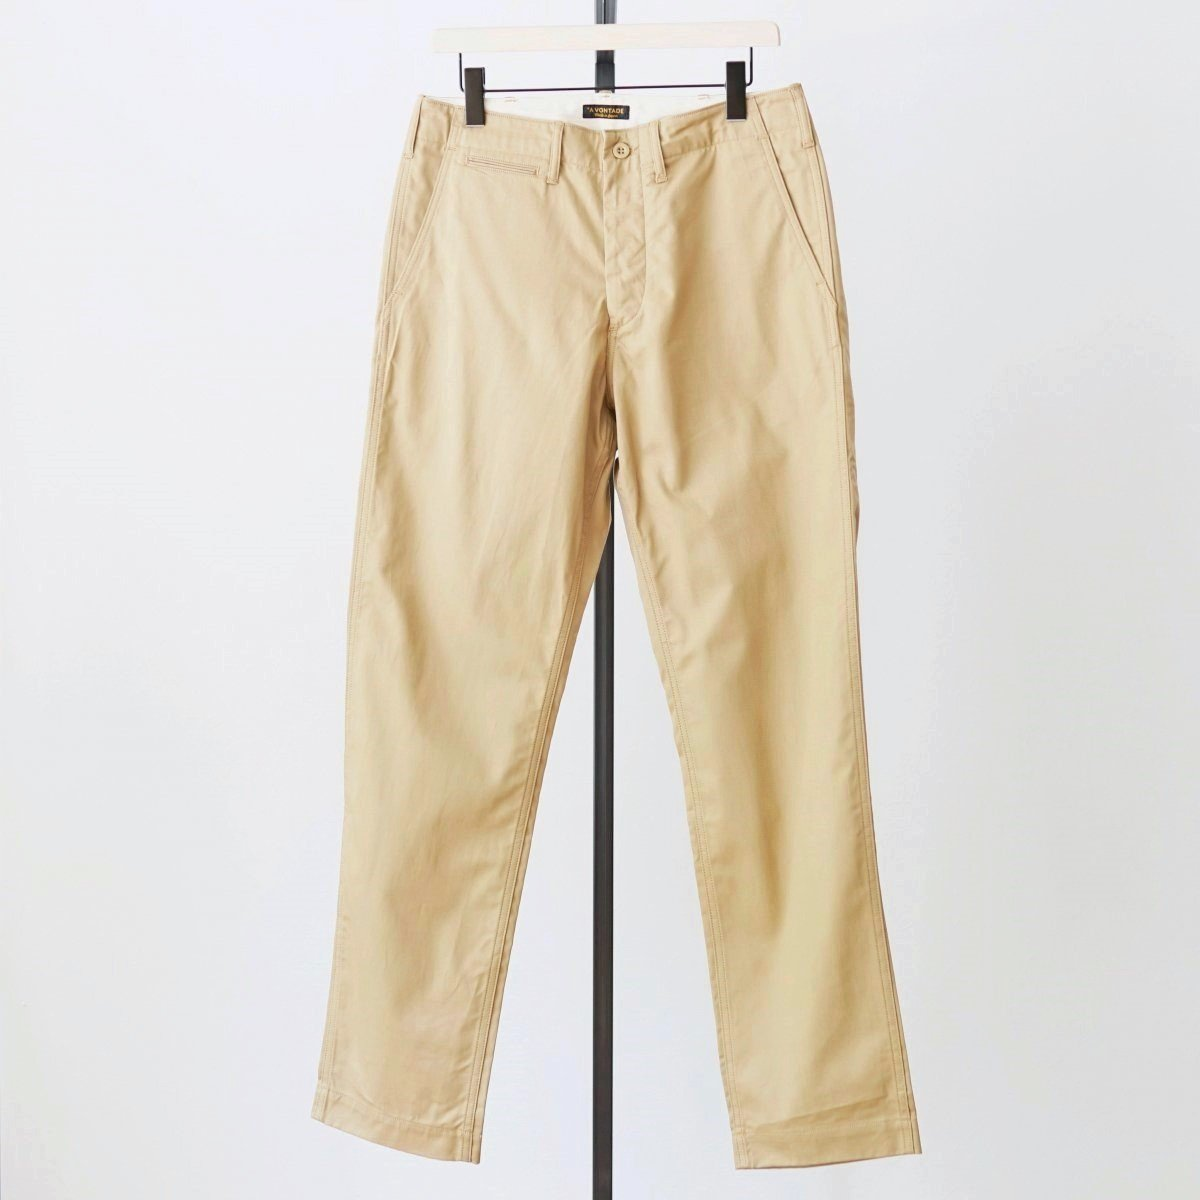 【AVONTADE アボンタージ】CLASSIC CHINO TROUSERS ( REGULAR FIT ) - BEIGE